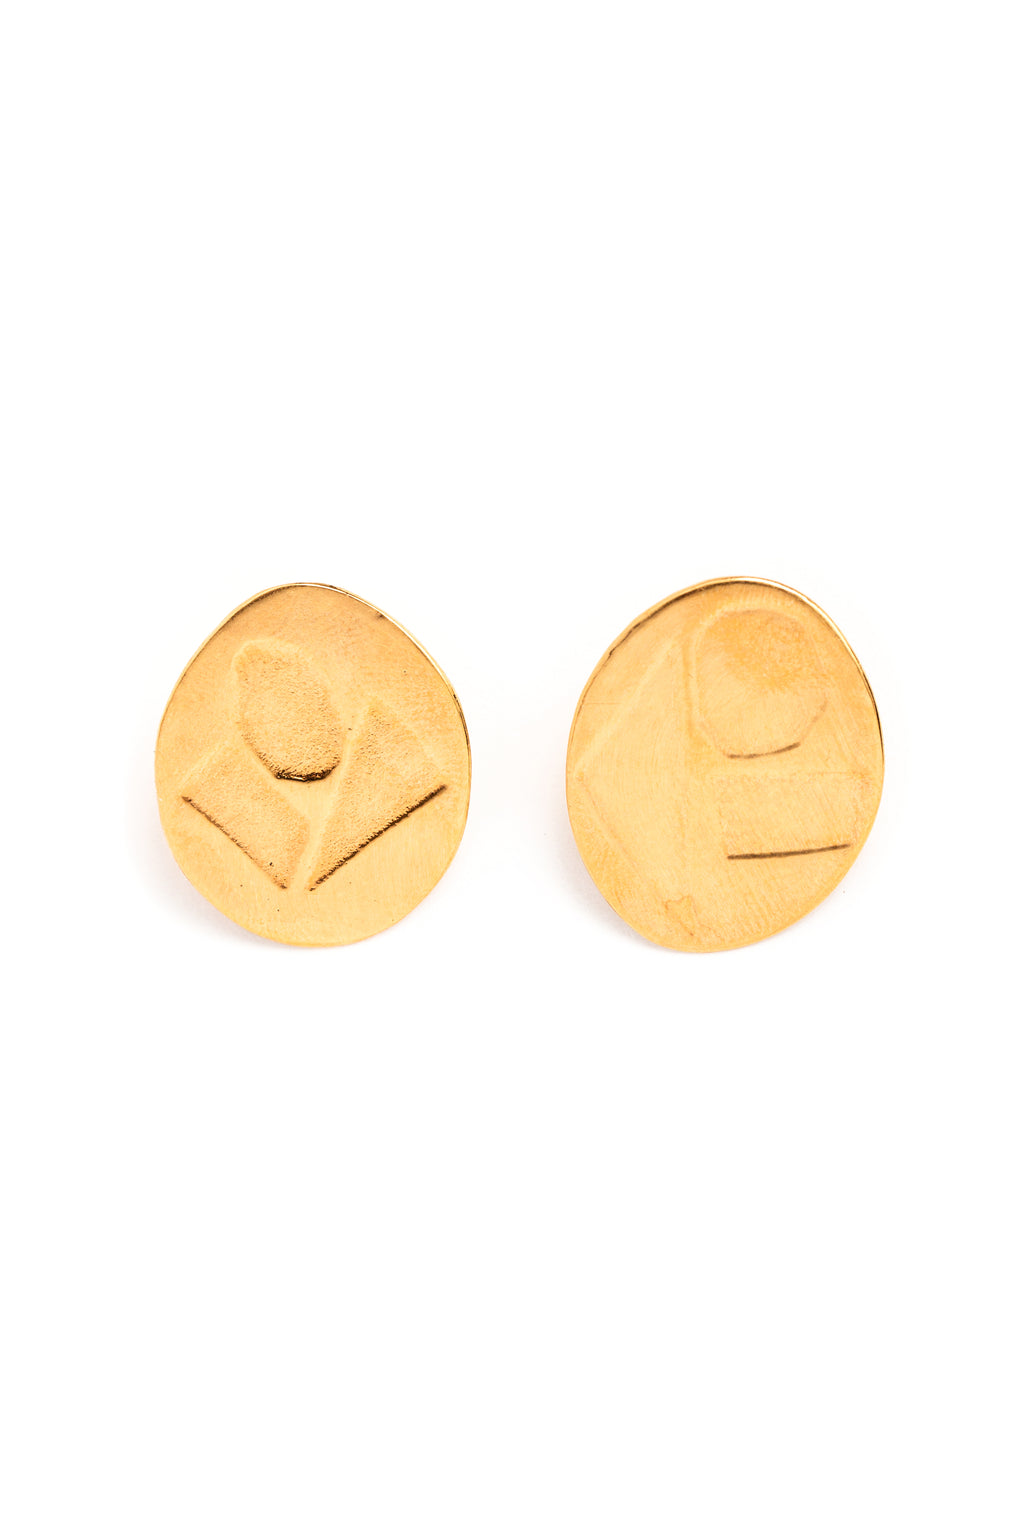 CAT LUCK Geometric O Studs